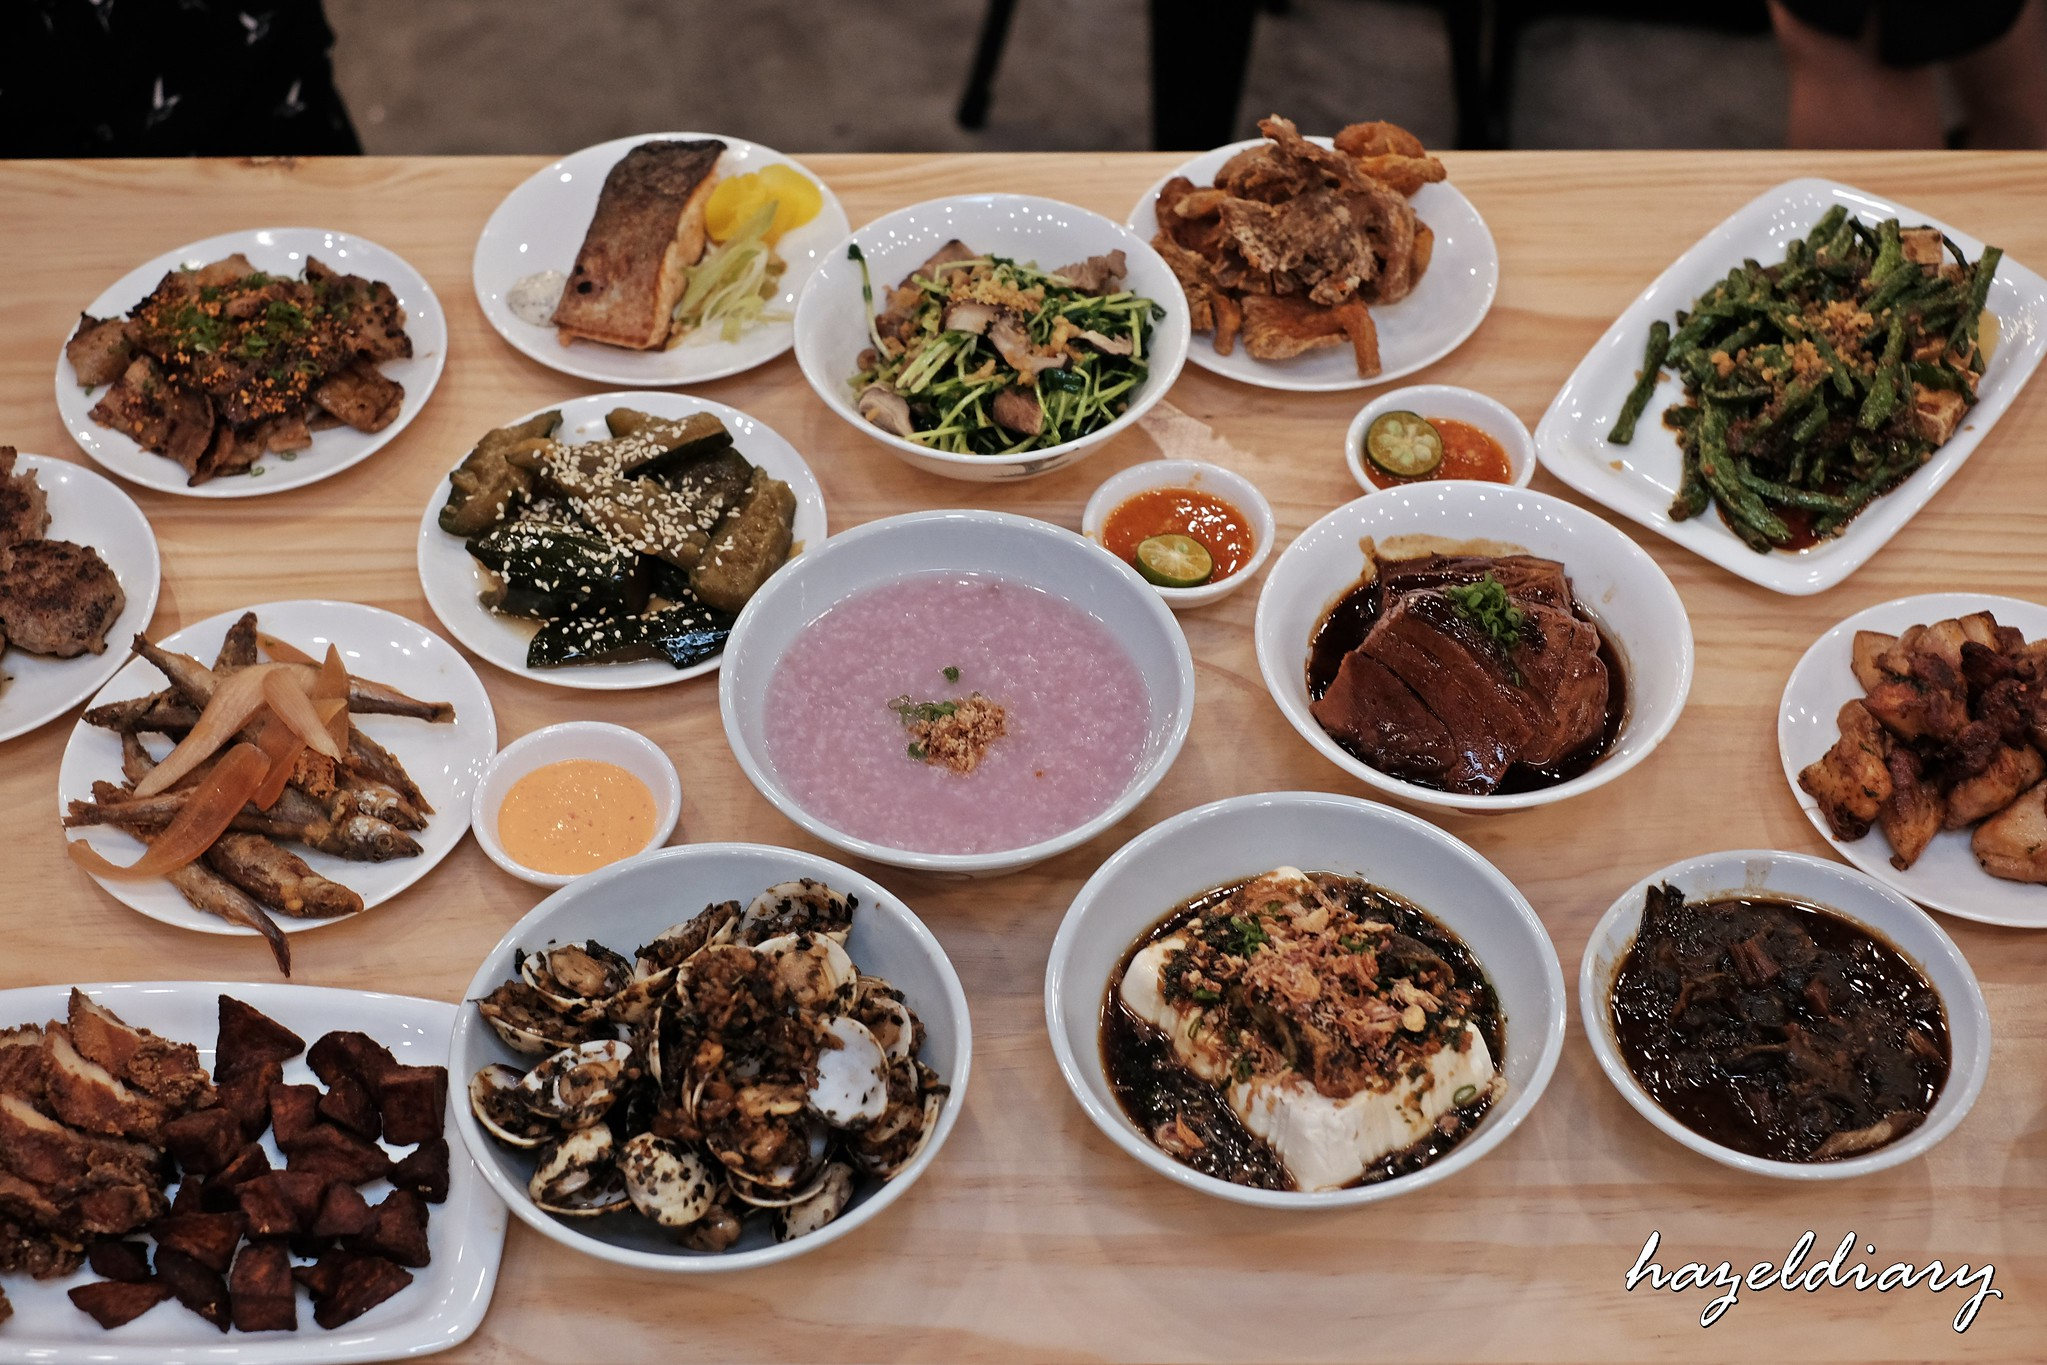 [SG EATS] The Salted Plum Opens in Suntec City with Exclusive Breakfast Set And Expanded Menu